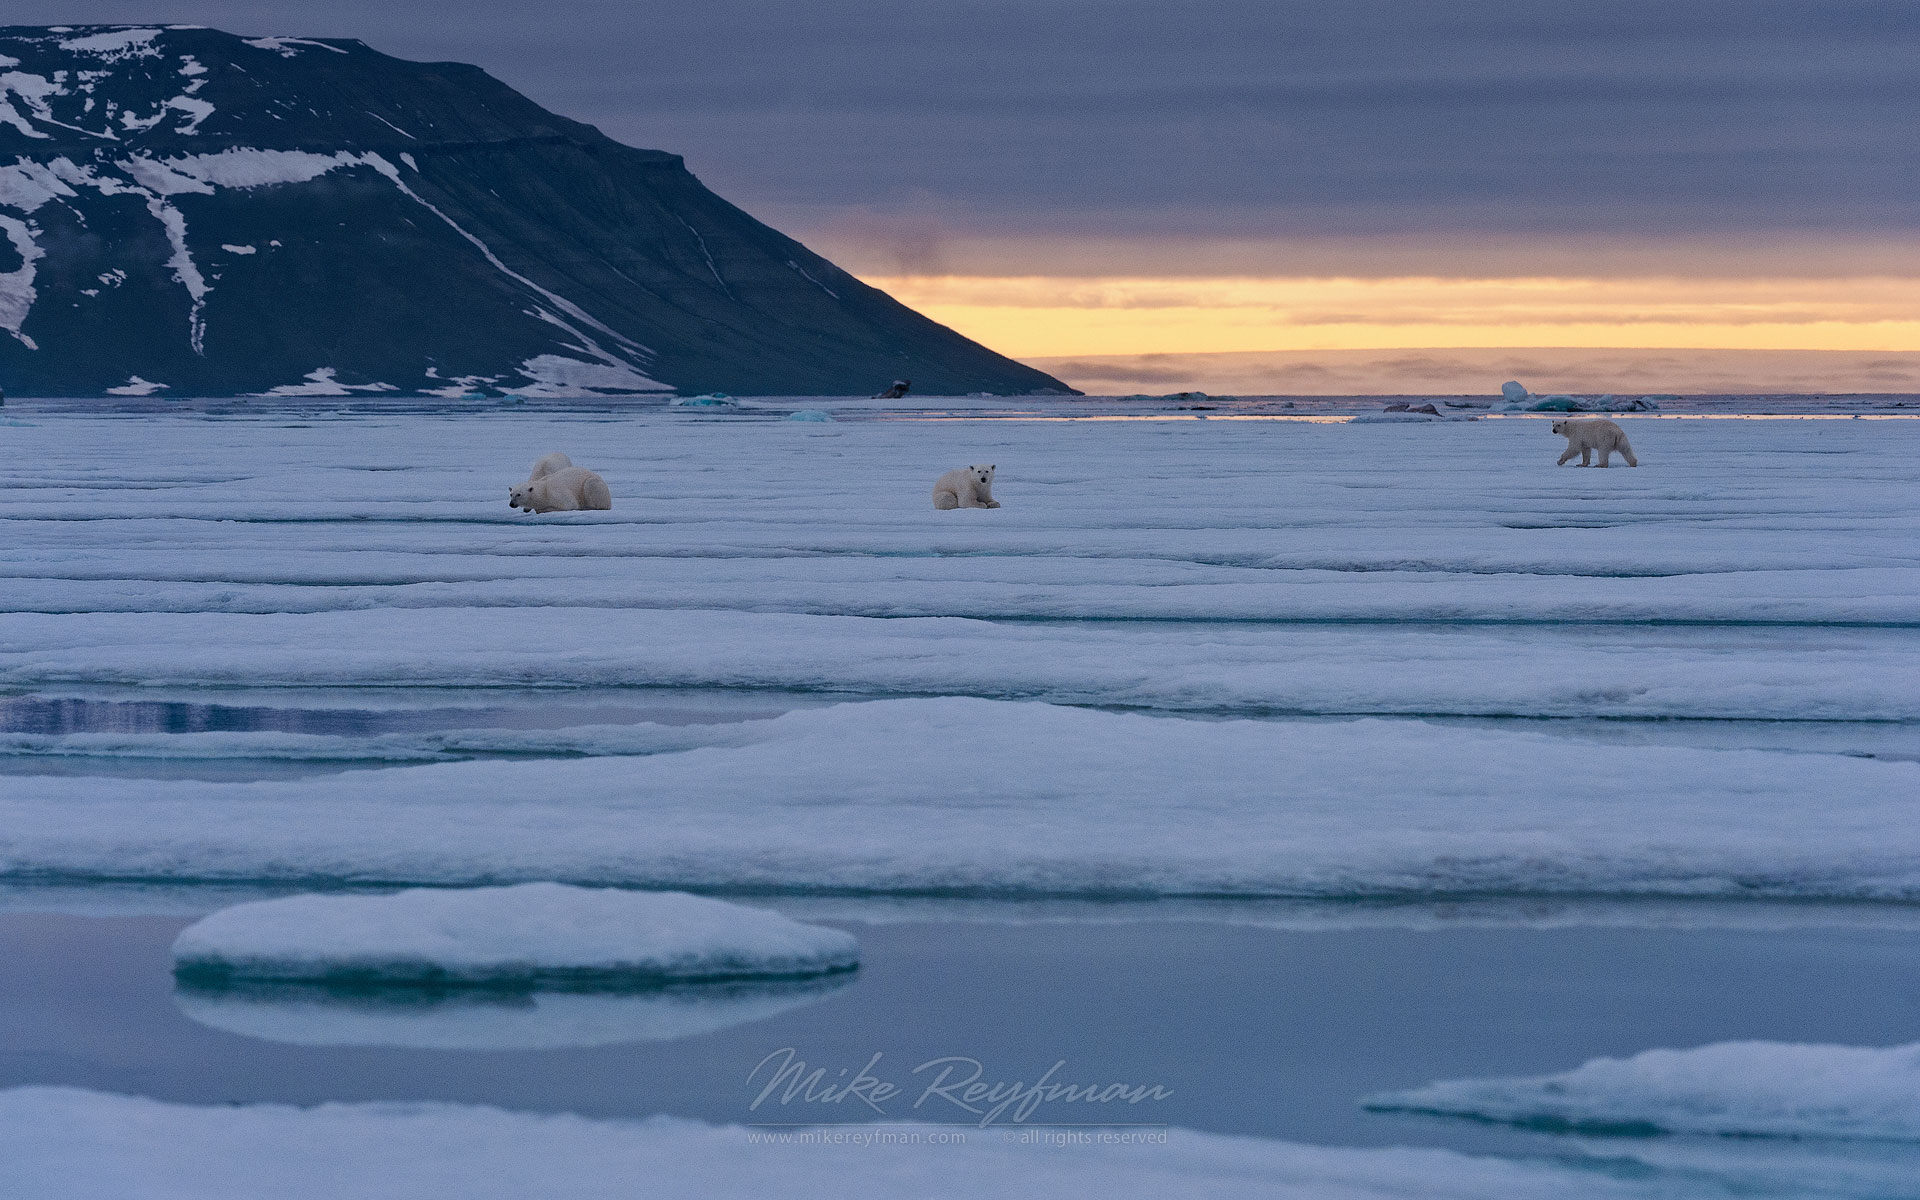 Spitsbergen Zoo. Polar Bear resting on ice along Spitsbergen coast at sunset. Spitsbergen, Svalbard, Norway. - Polar-Bears-Svalbard-Spitsbergen-Norway - Mike Reyfman Photography